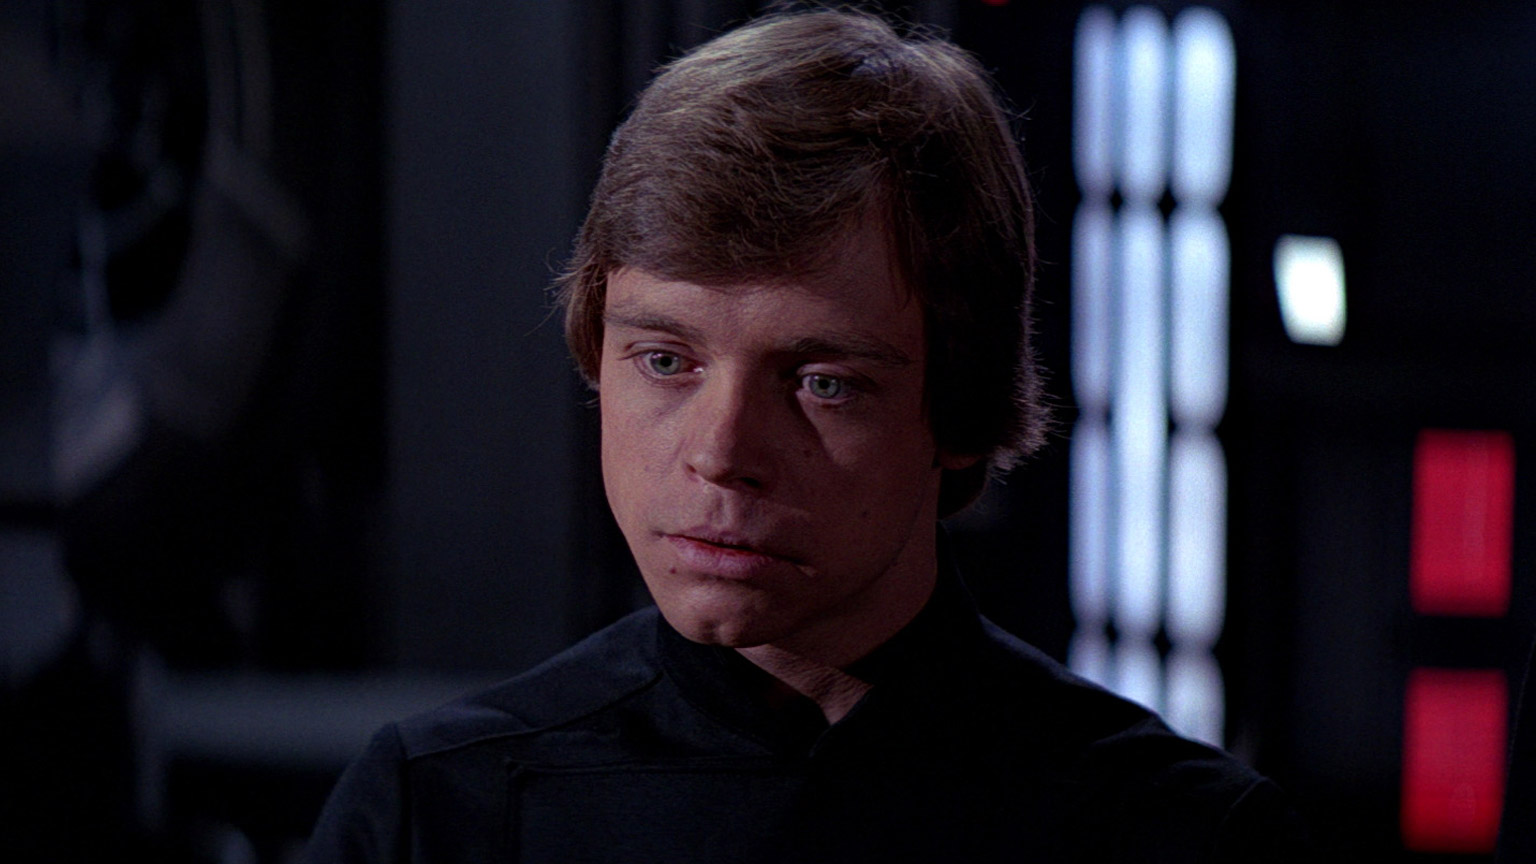 Luke Skywalker in Return of the Jedi